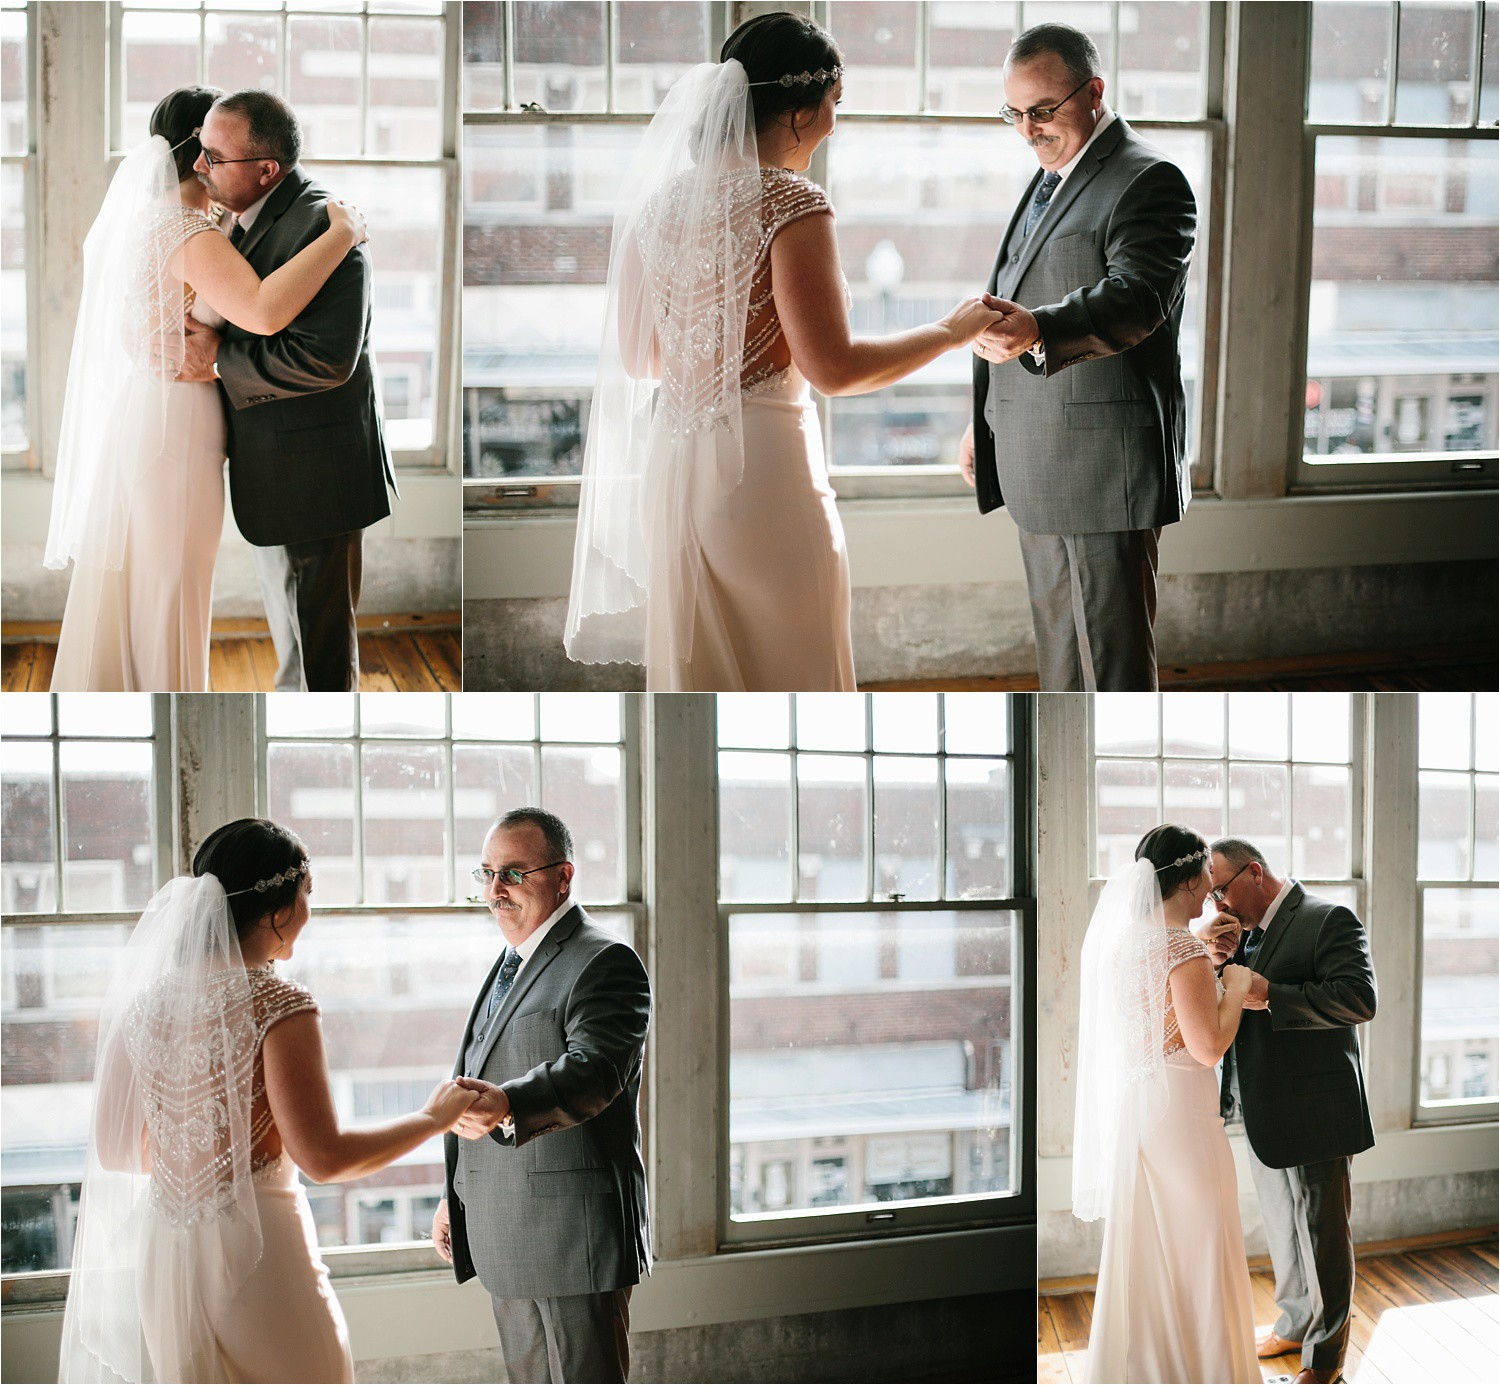 whittney-drew-__-an-intimate-wine-and-navy-wedding-in-an-industrial-venue-at-loft-123-in-paris-tx-by-north-texas-wedding-photographer-rachel-meagan-photography-_-023